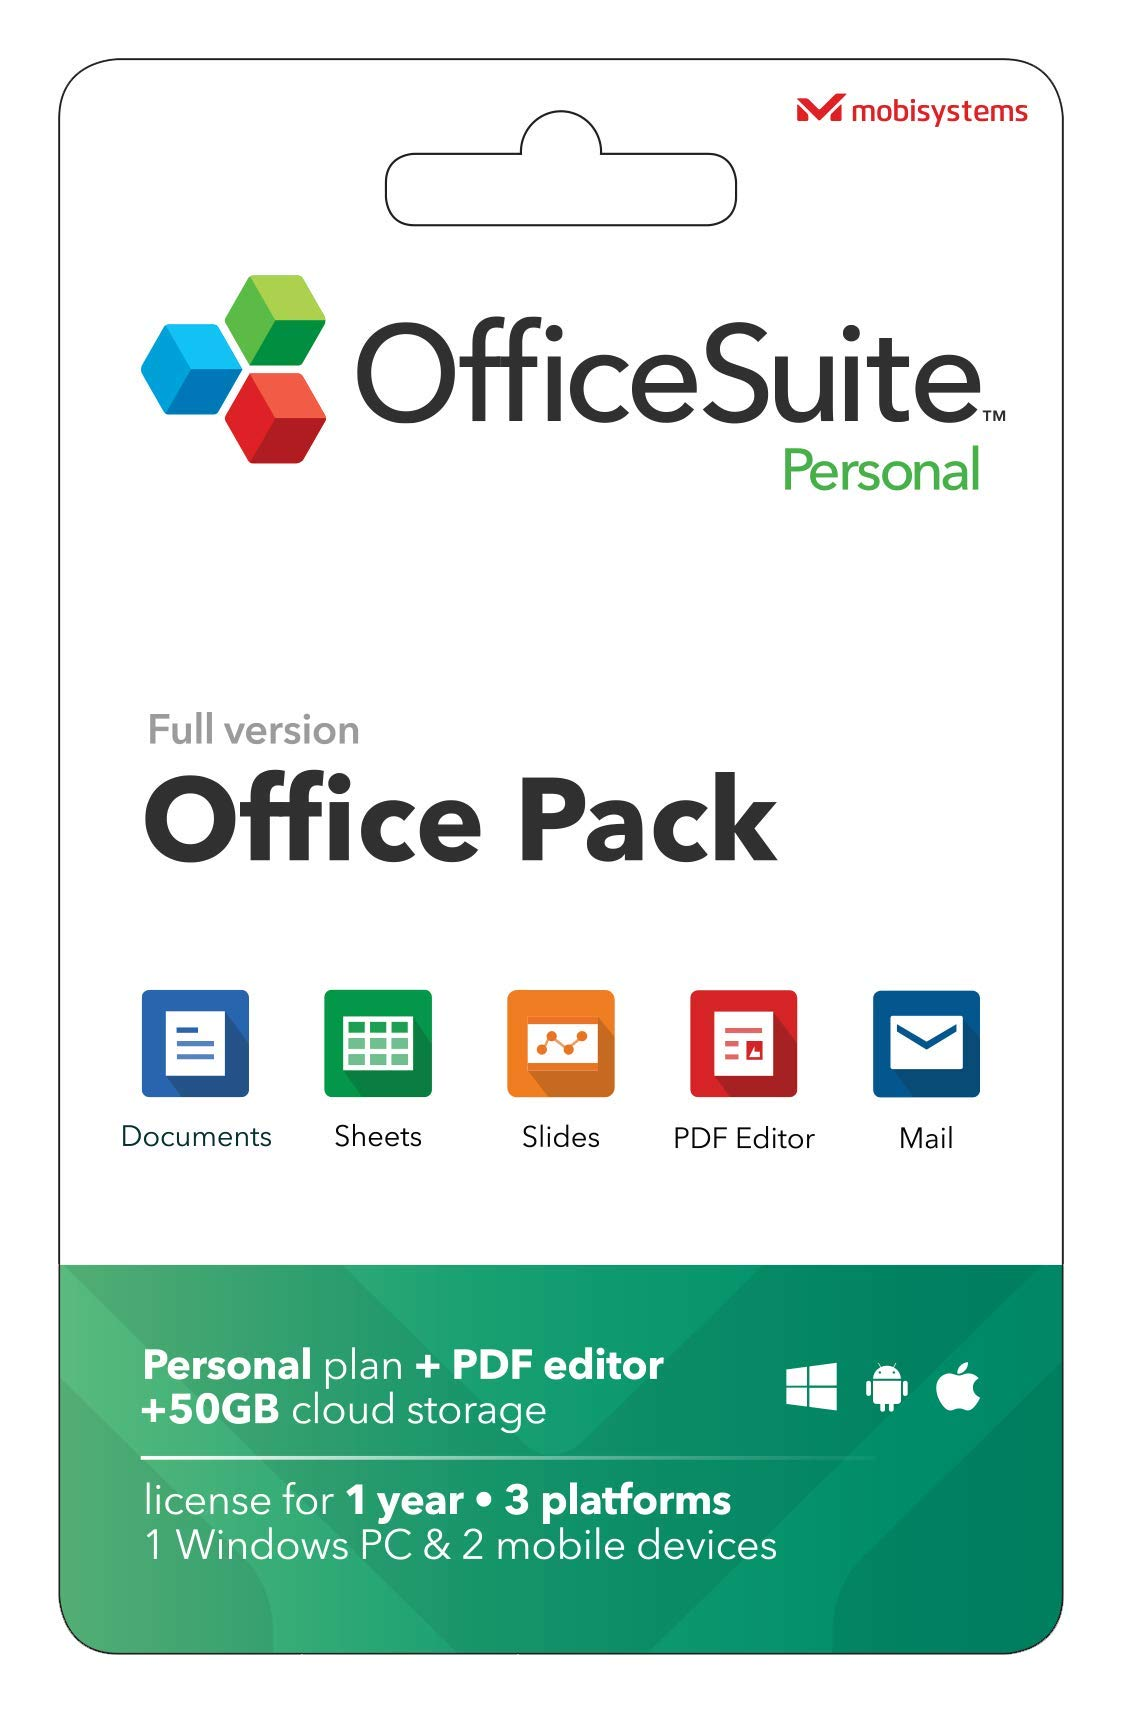 OfficeSuite Personal Compatible with Microsoft® Office Word Excel & PowerPoint® and Adobe PDF for PC Windows 10 8.1 8 7 - 1-year license, 1 user by MobiSystems